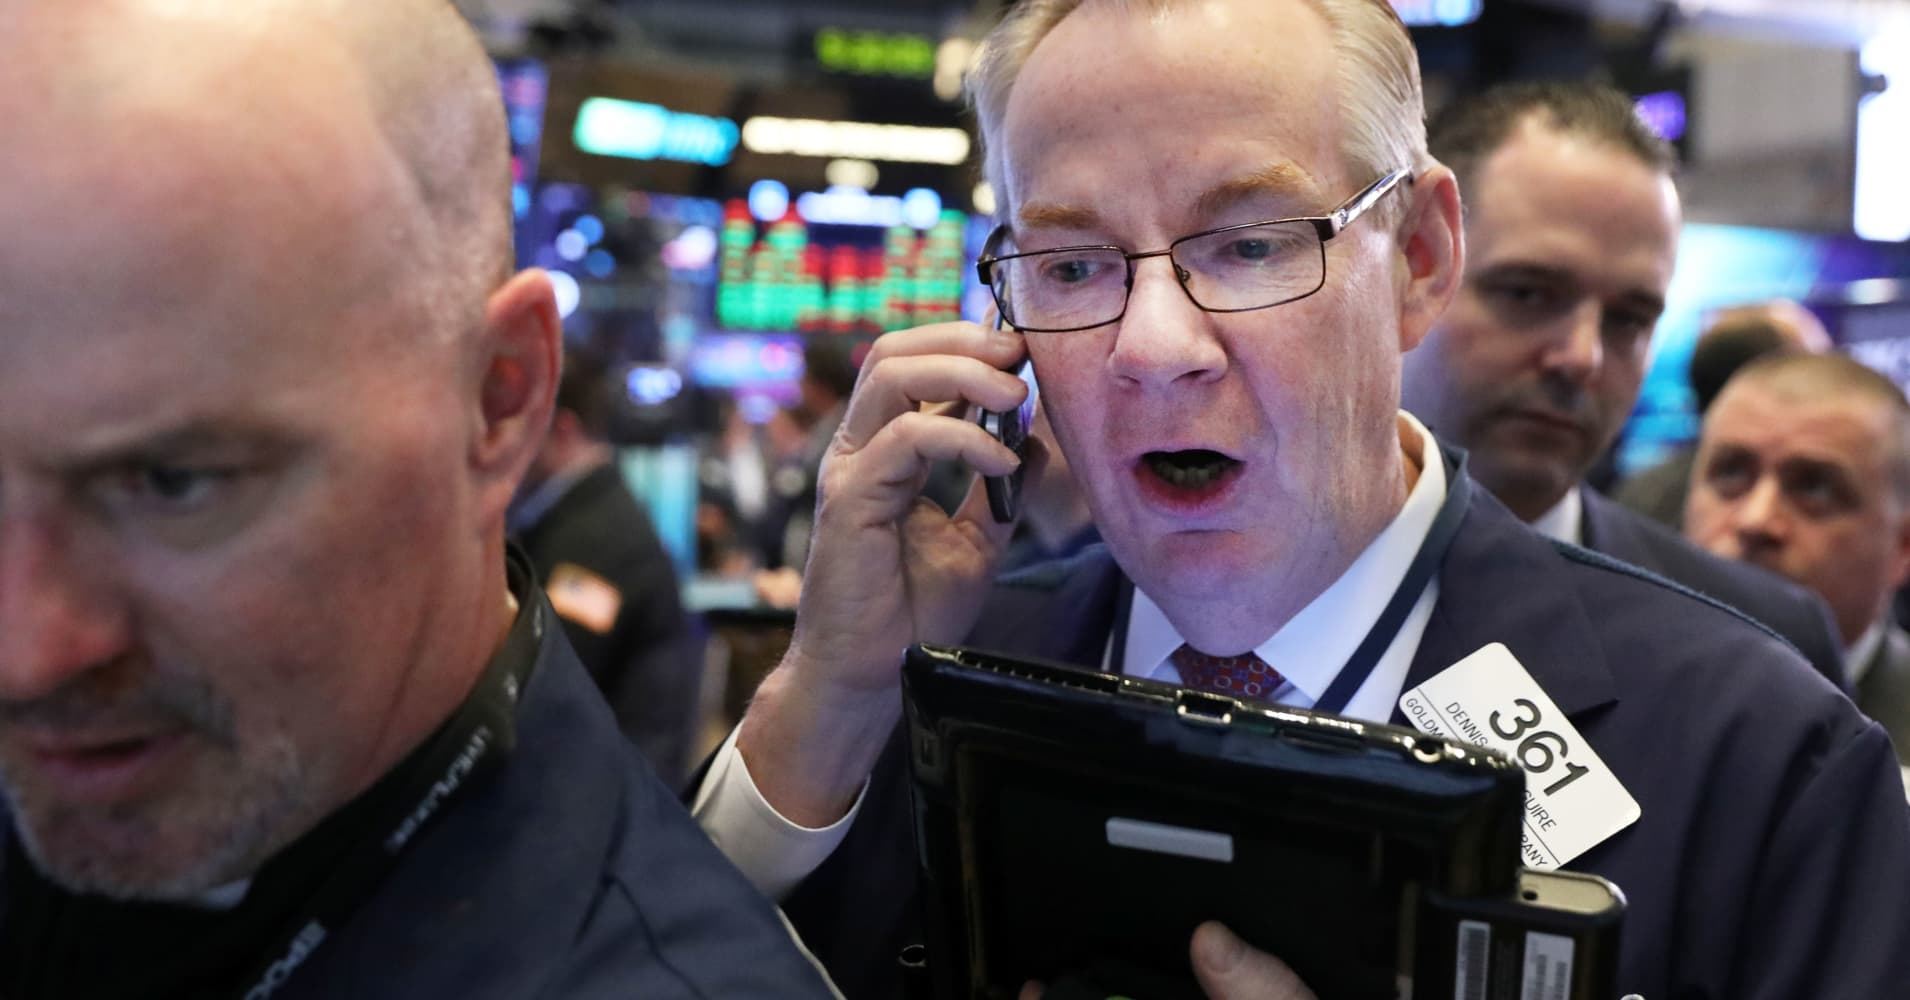 Stocks making the biggest moves midday: Kraft Heinz, Wayfair, Stamps.com & more